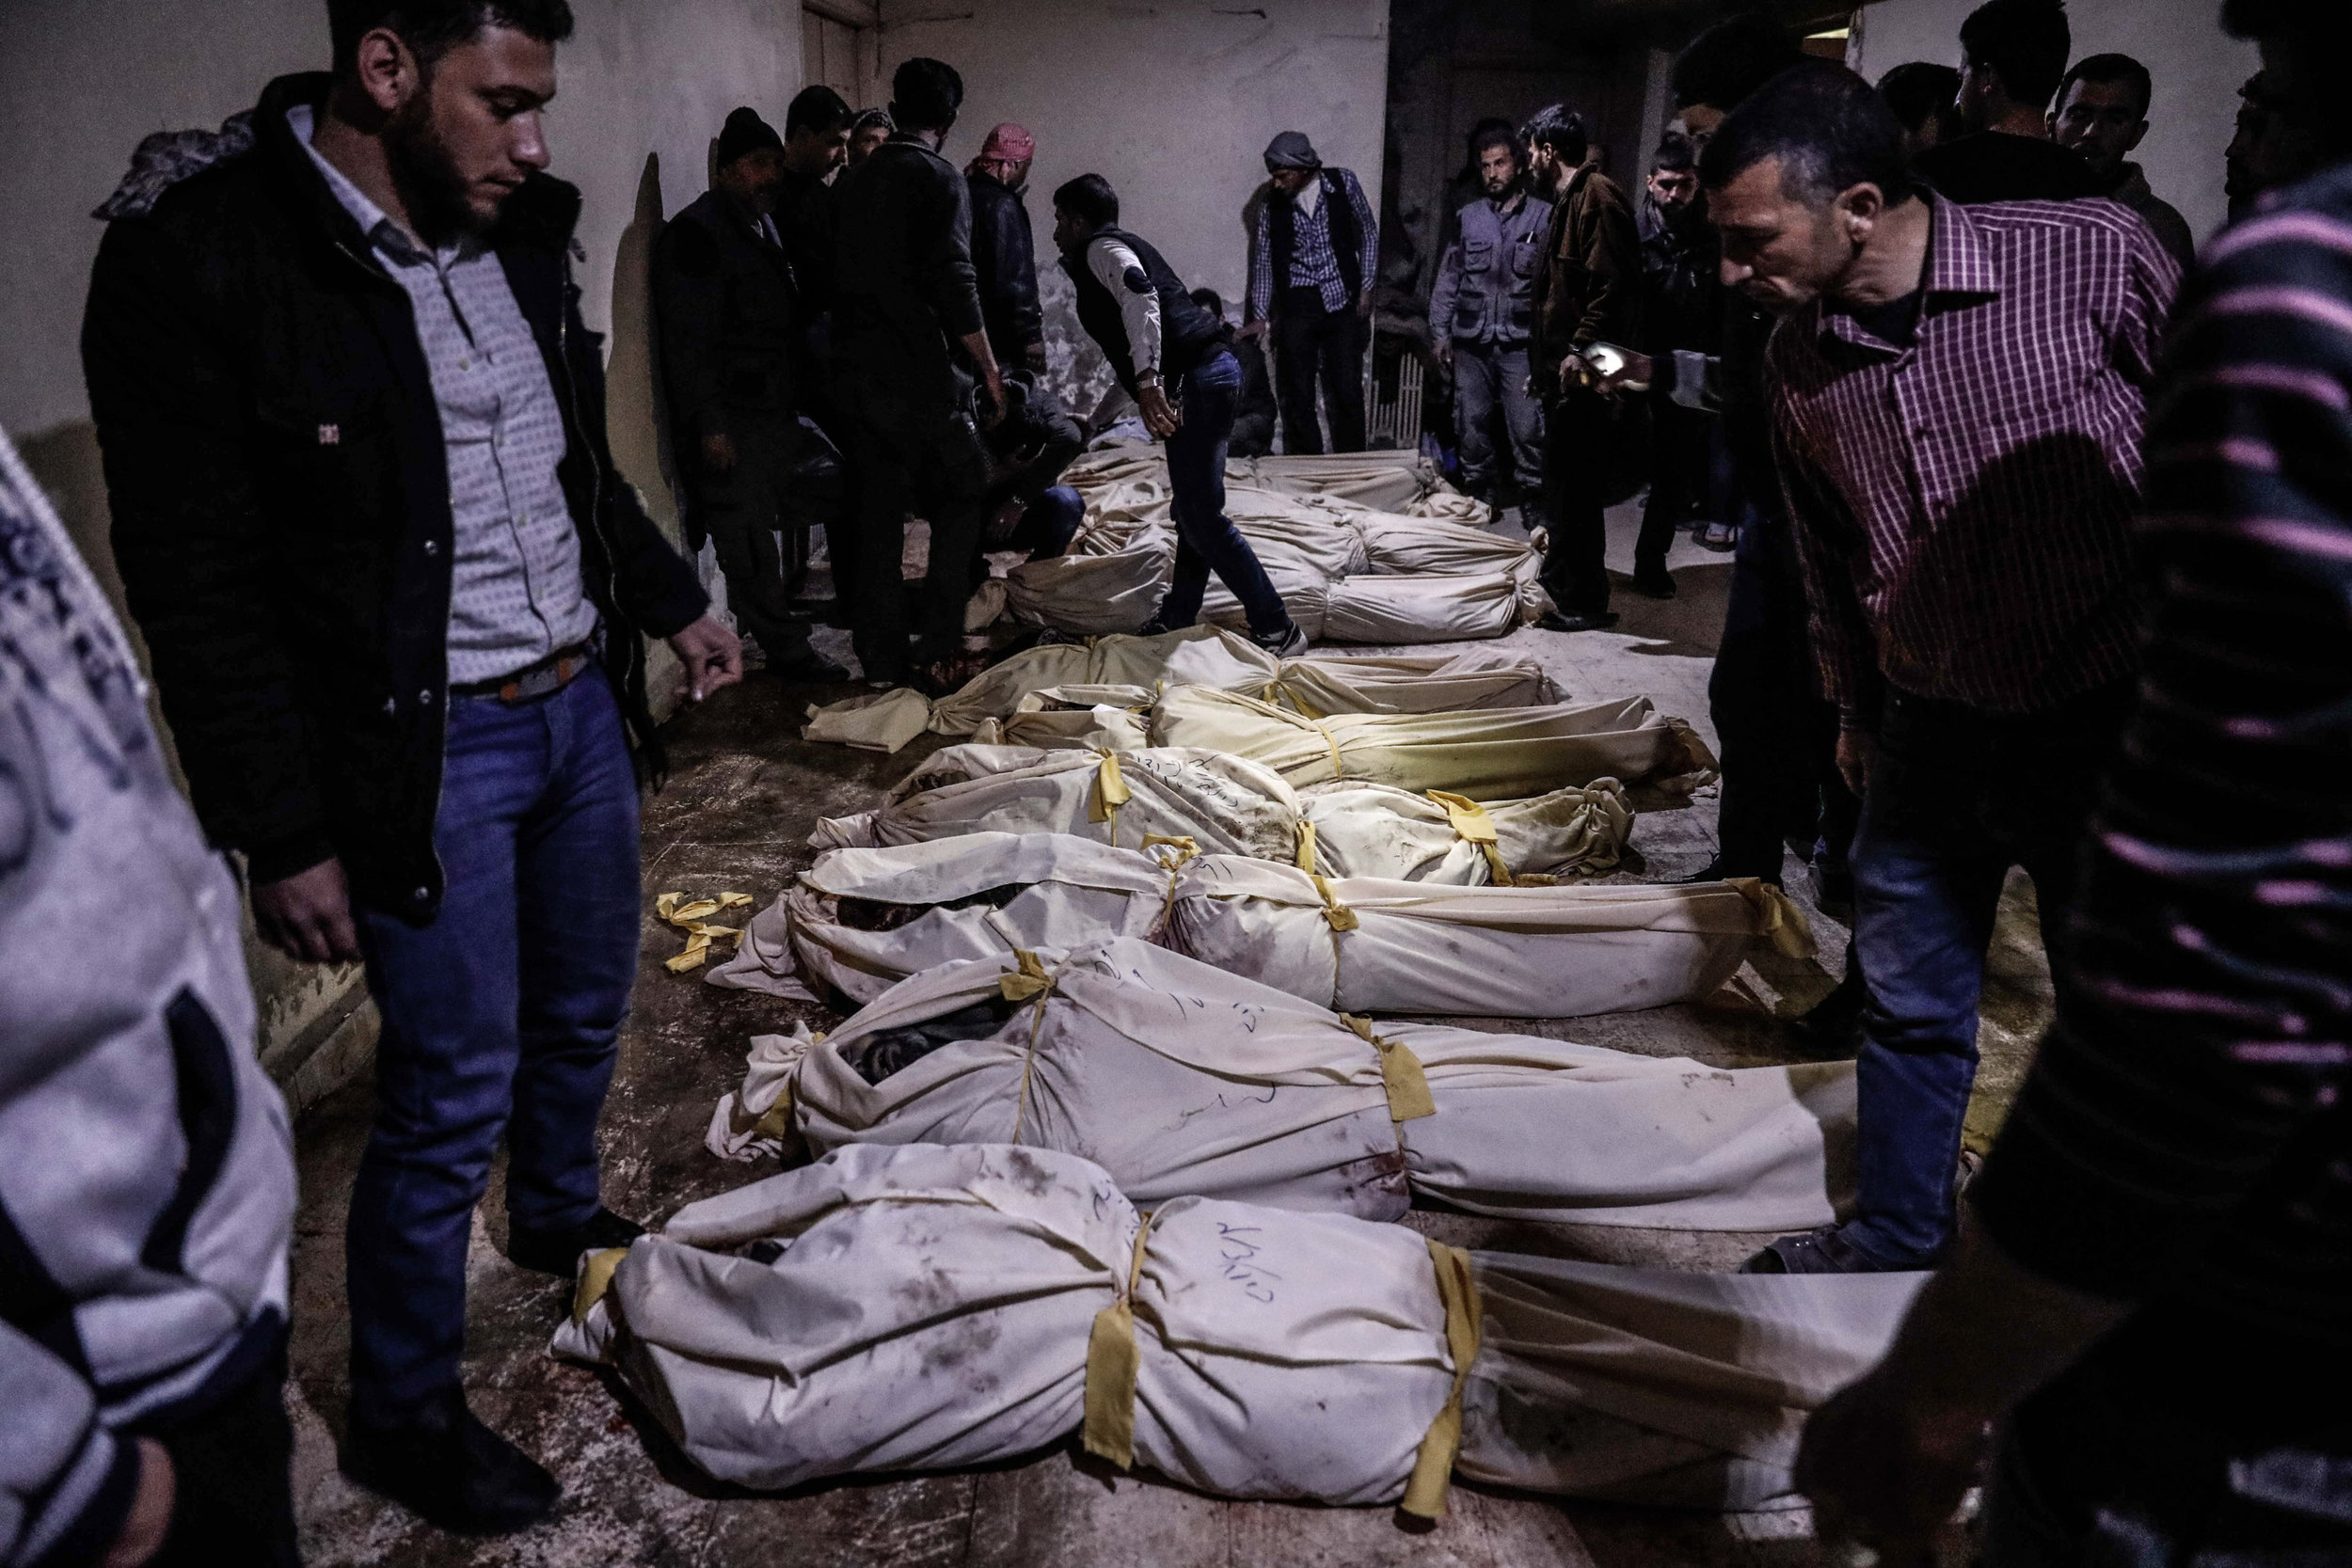 - A picture shows the bodies of people who were killed during the shelling lying down in an underground morgue.